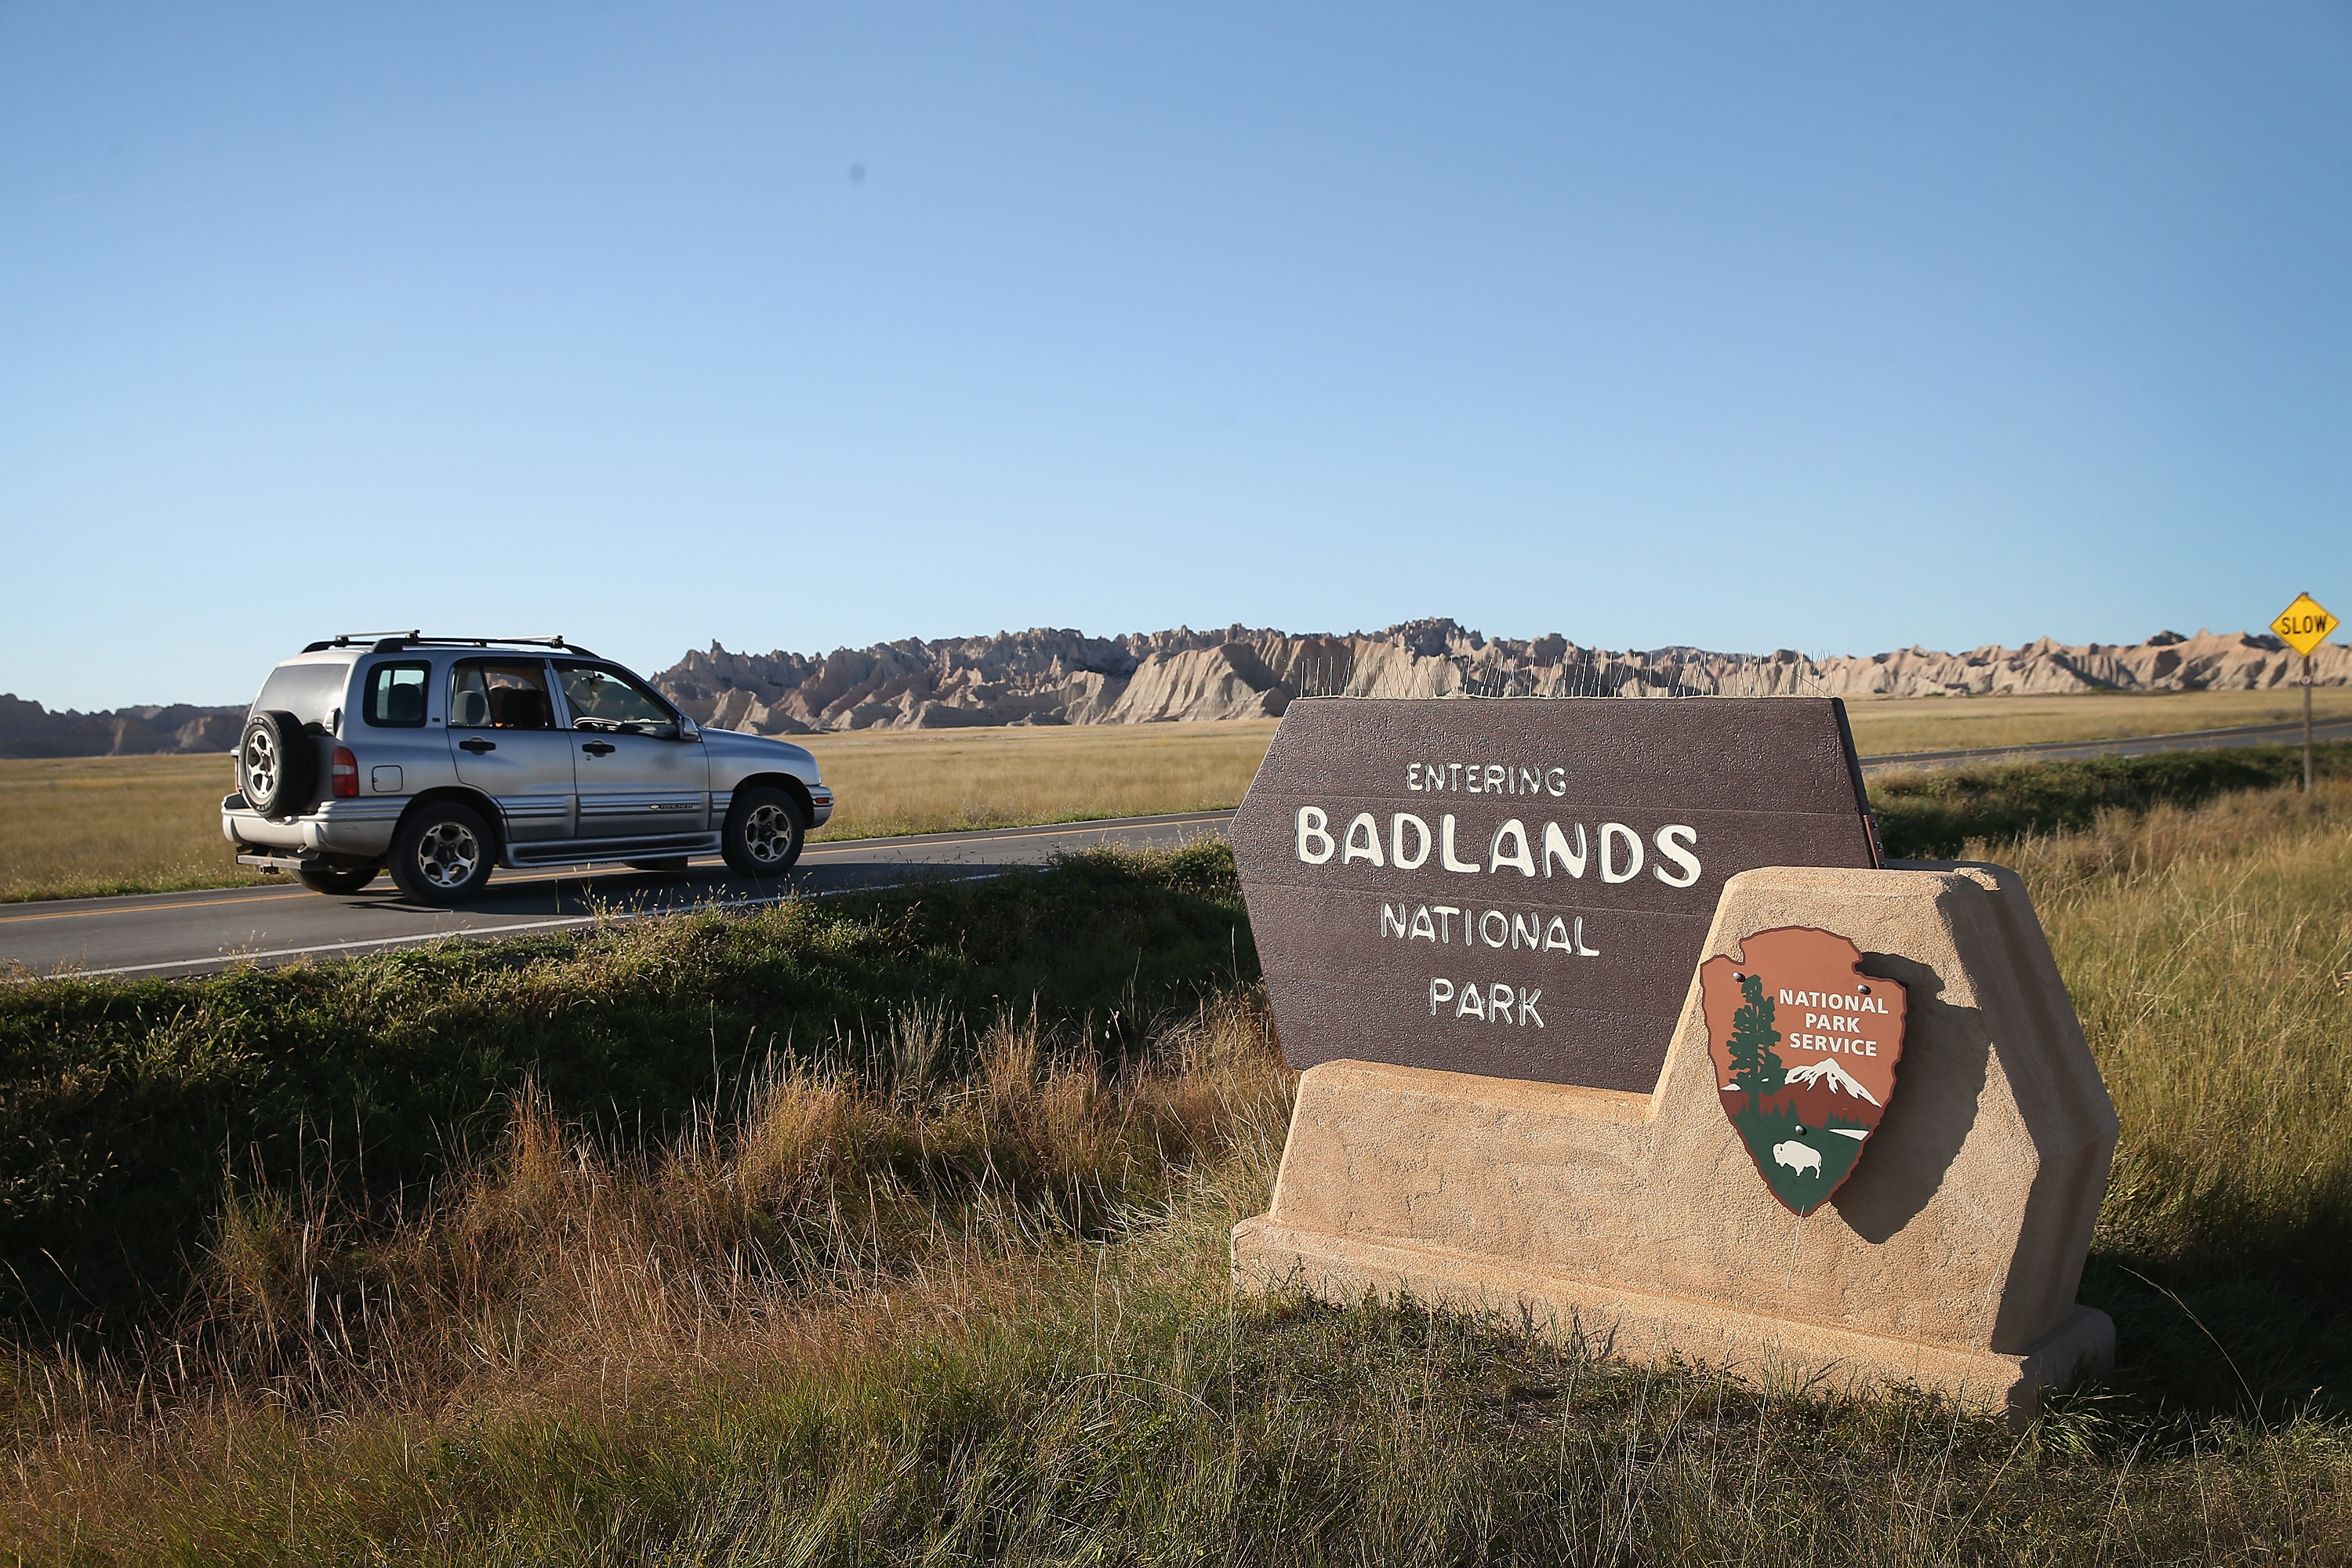 Badlands National Park stands up to Trump administration by